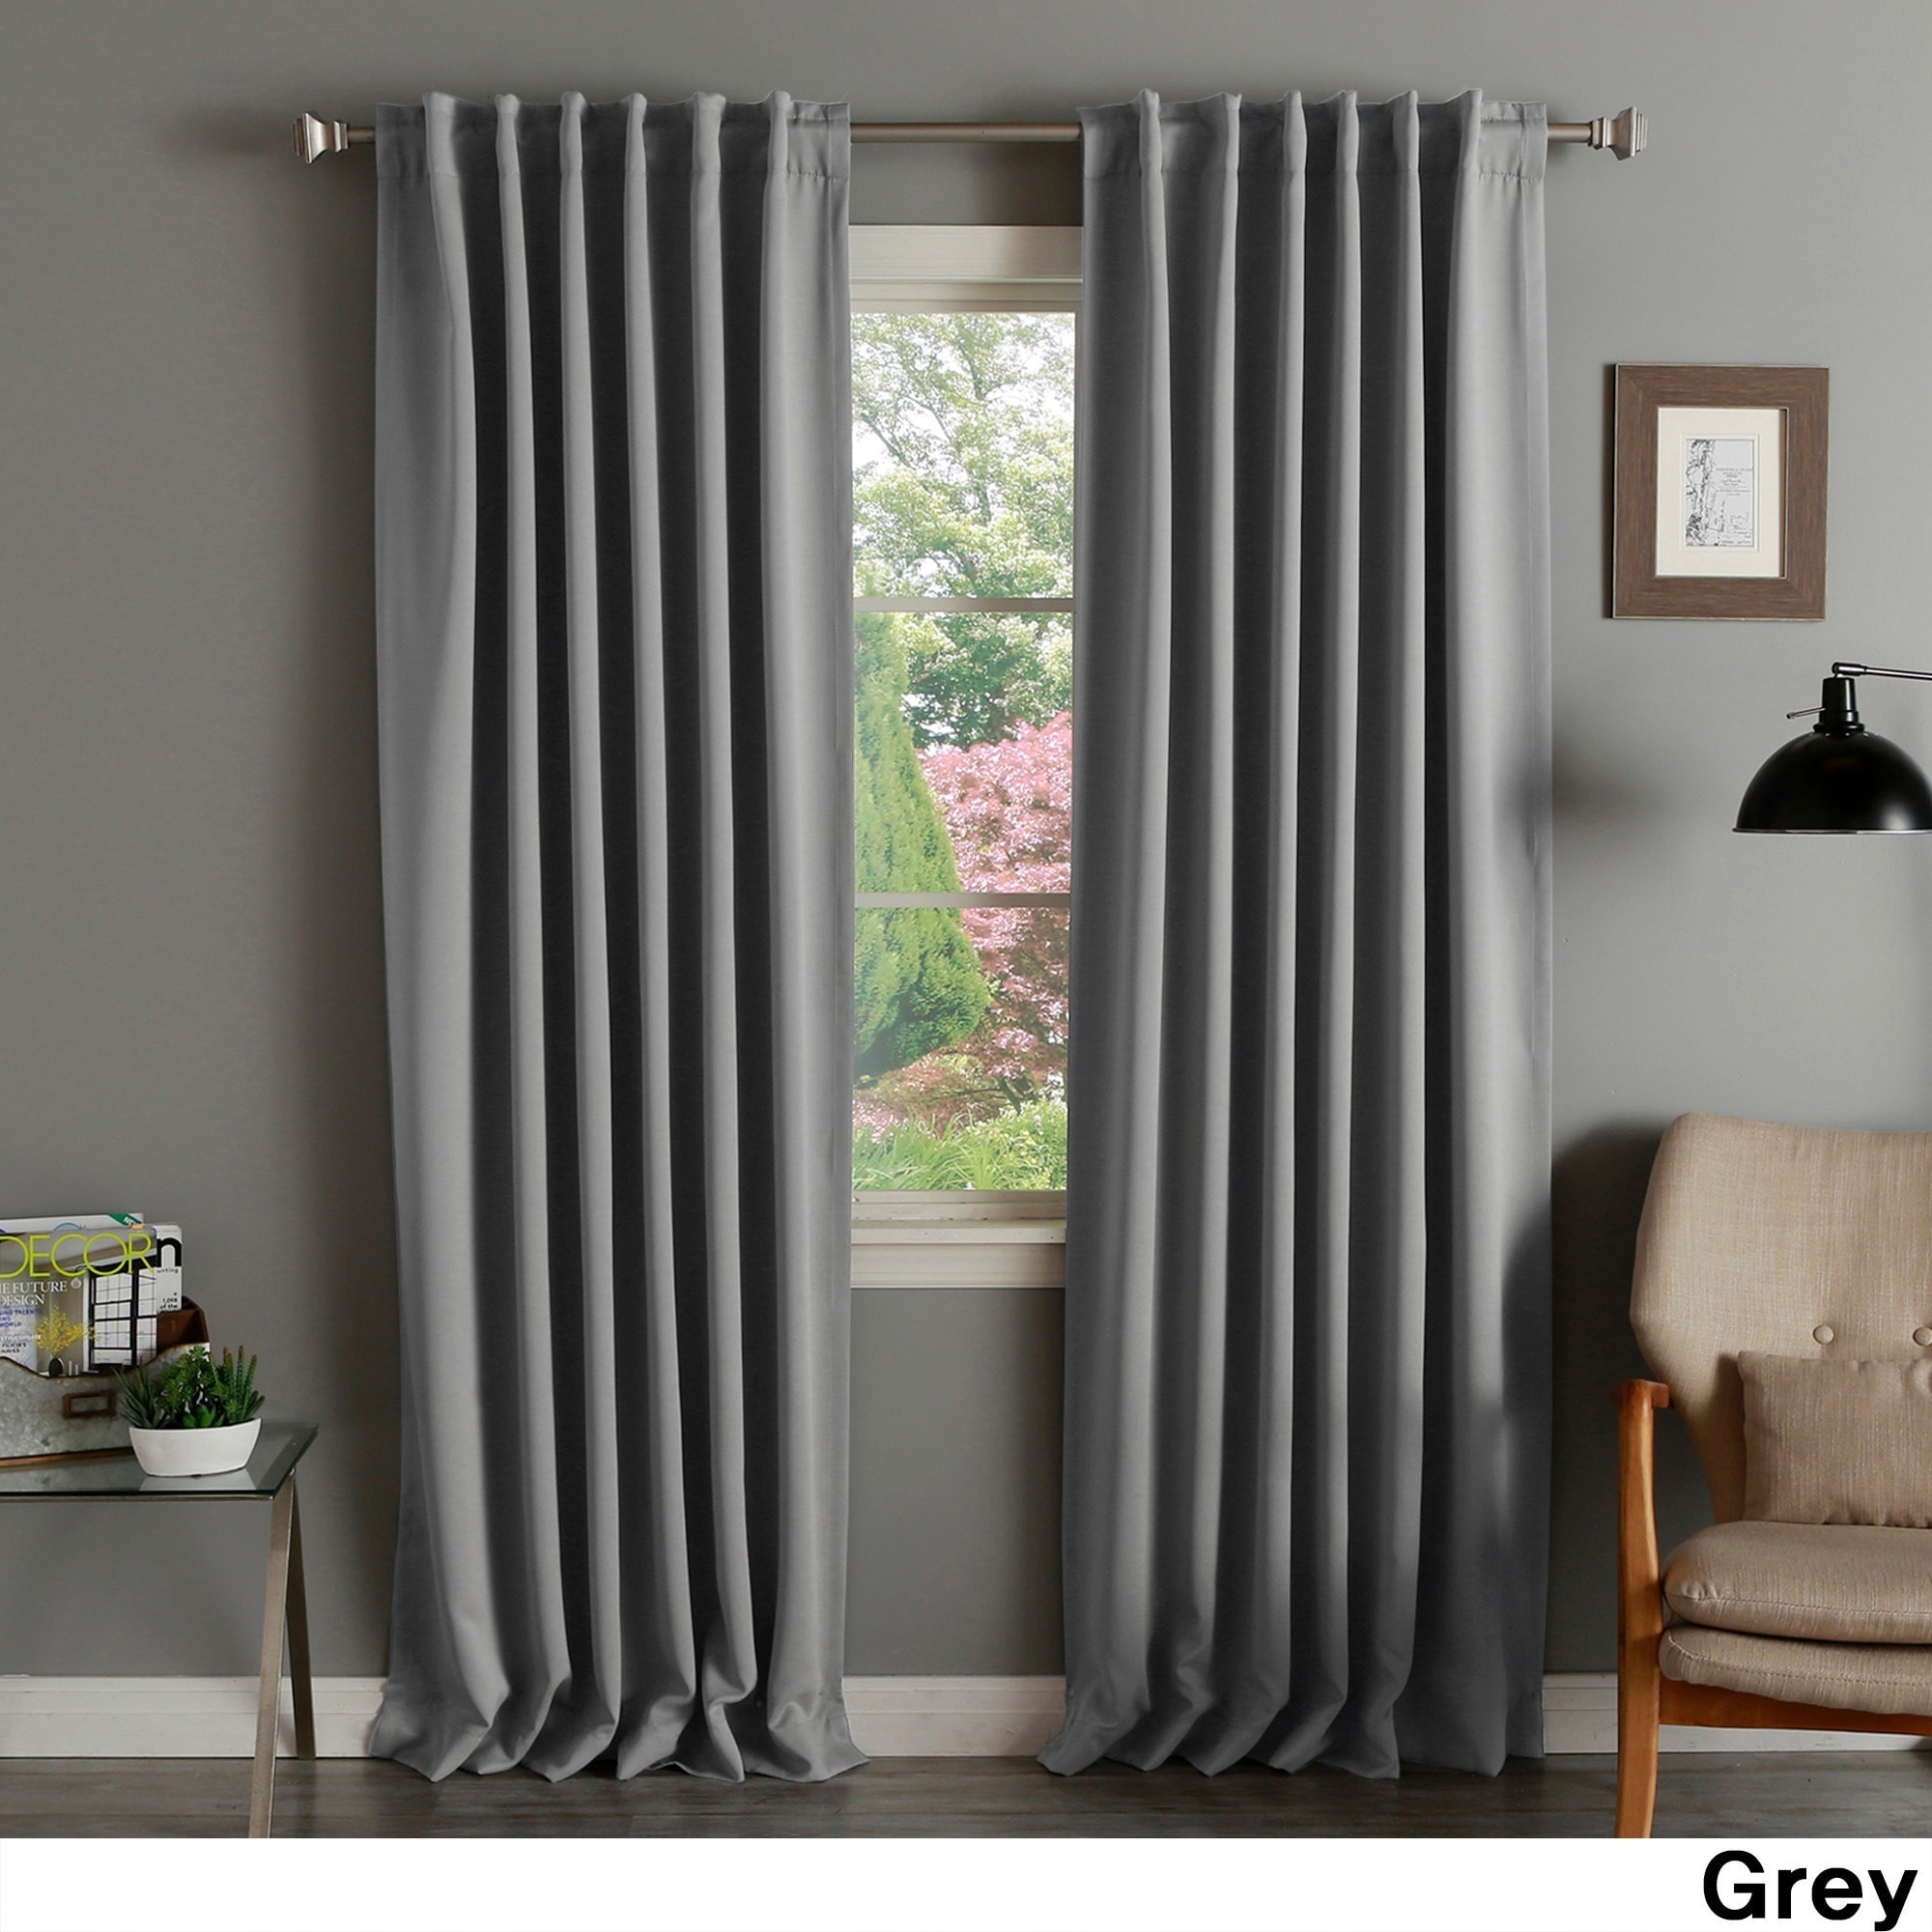 panel moroccan inch grey window curtains your rugs for and double design living attractive room interesting door decor blackout